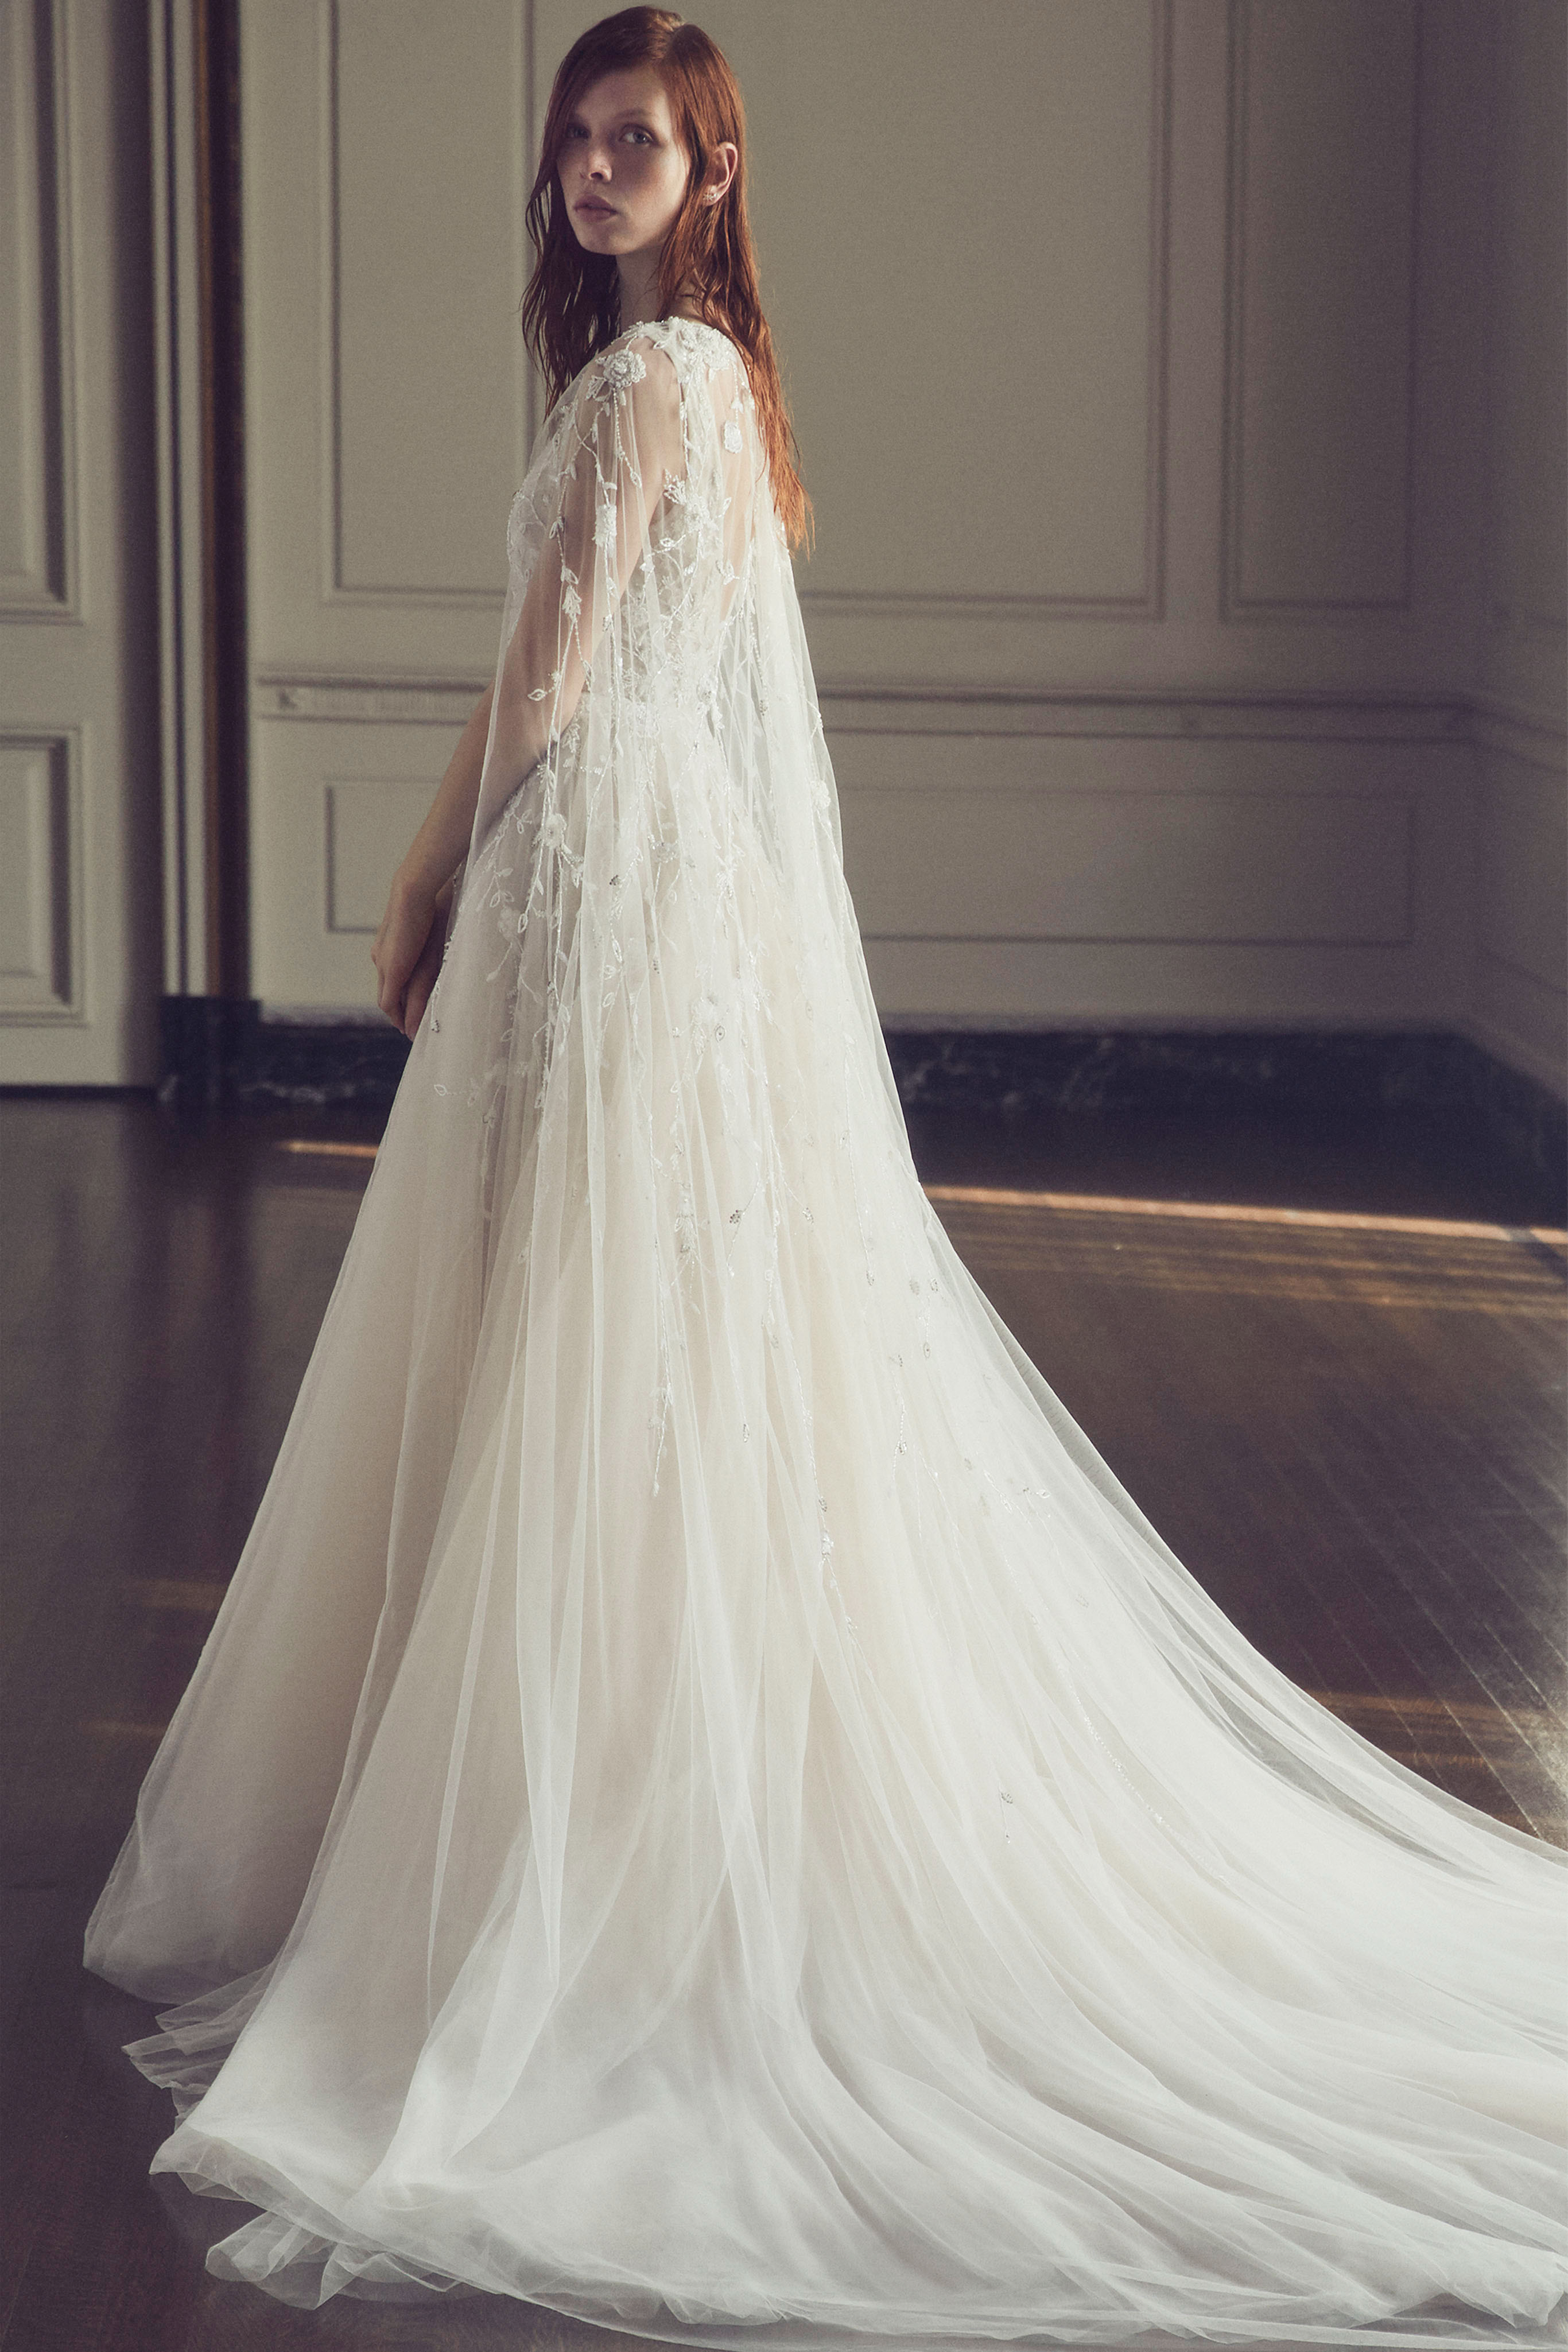 monique lhuillier fall 2019 a-line gown with sheer cape